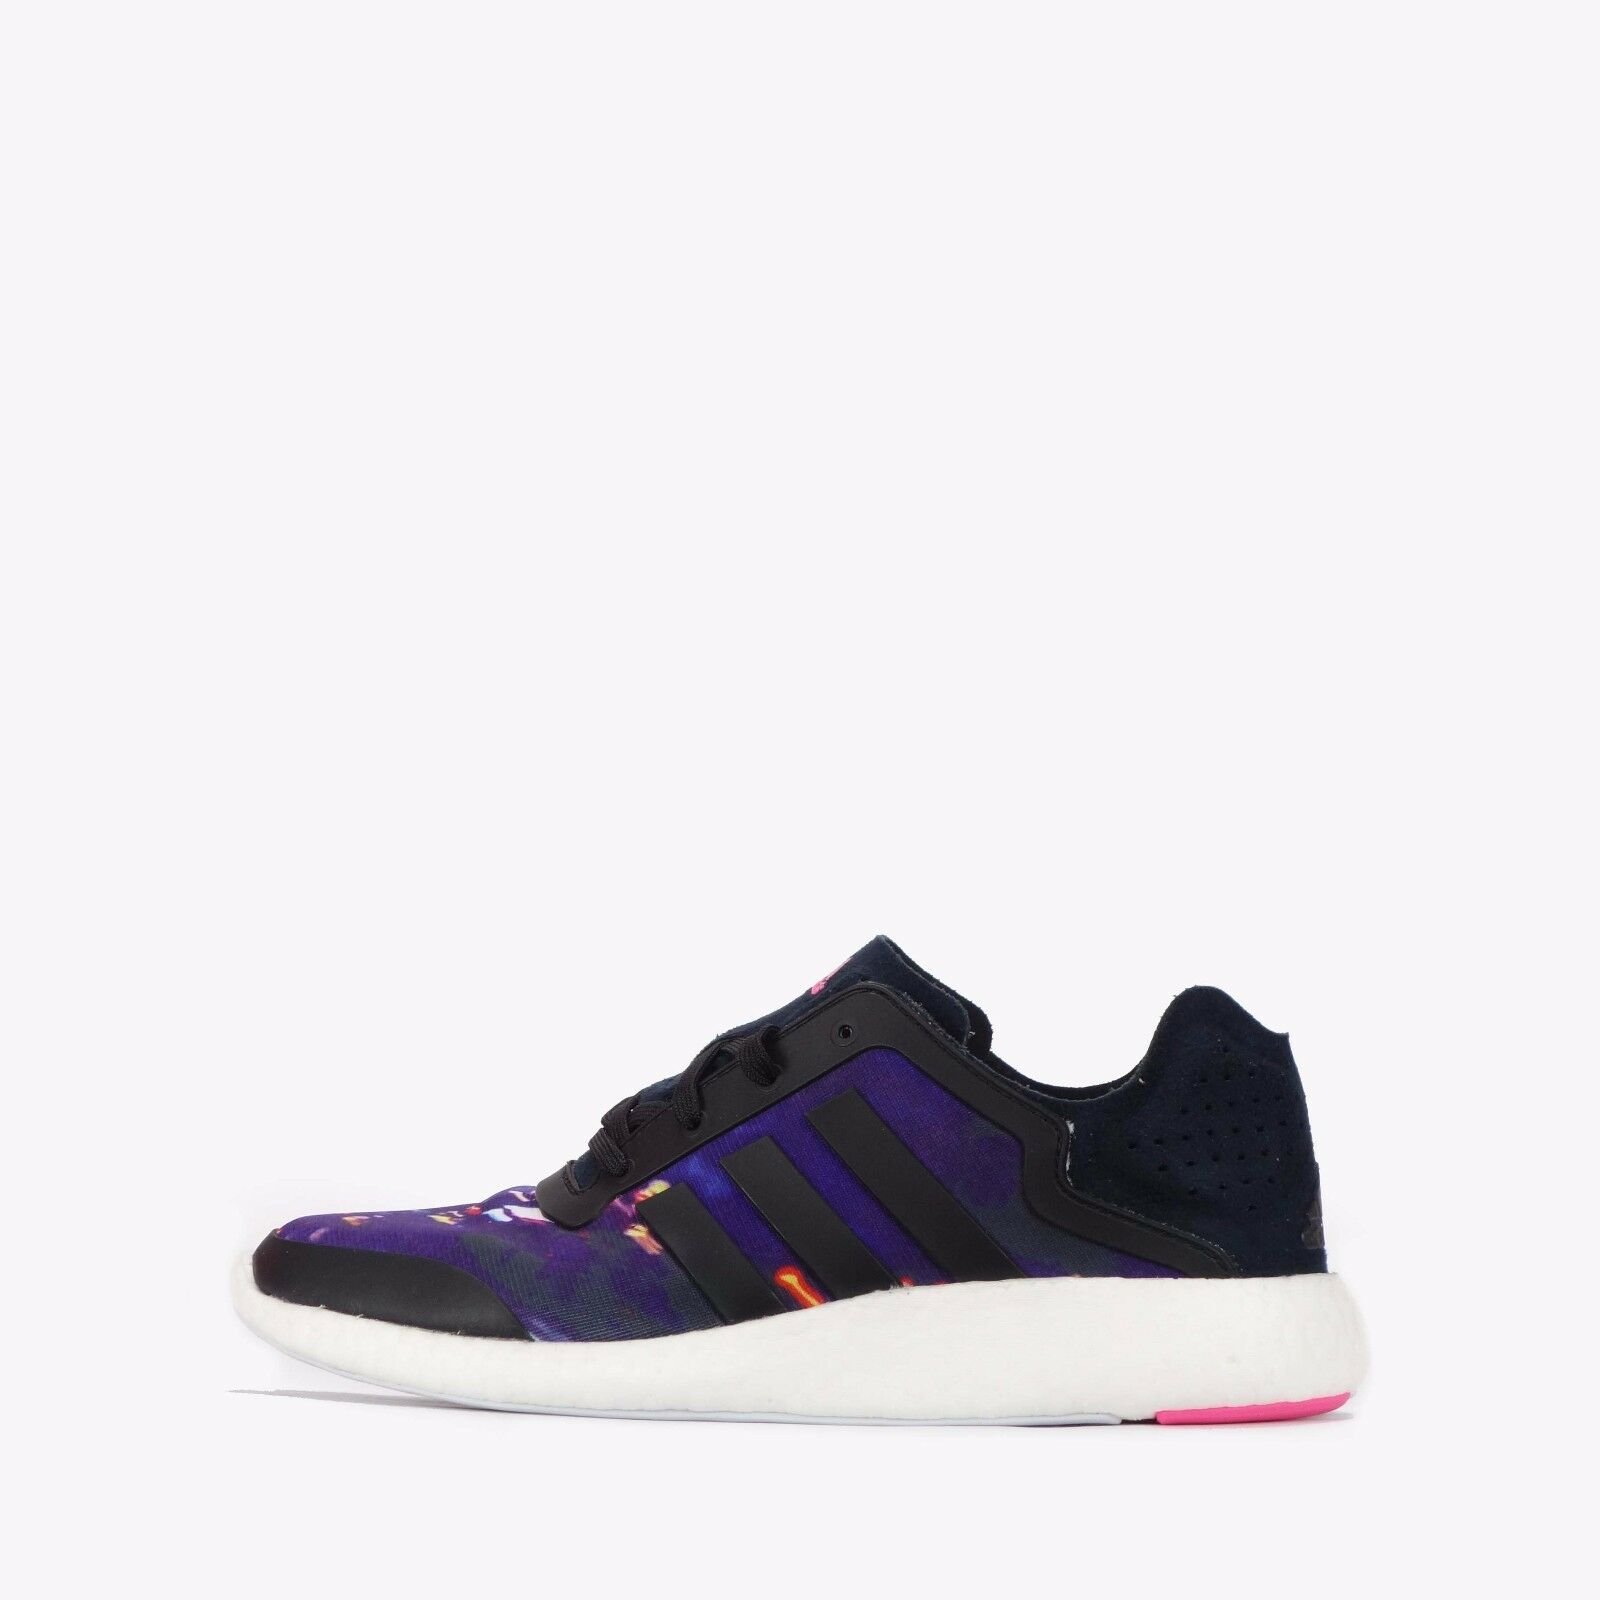 Adidas Pure Boost Women's Running Shoes Black/Multi Colour Seasonal price cuts, discount benefits